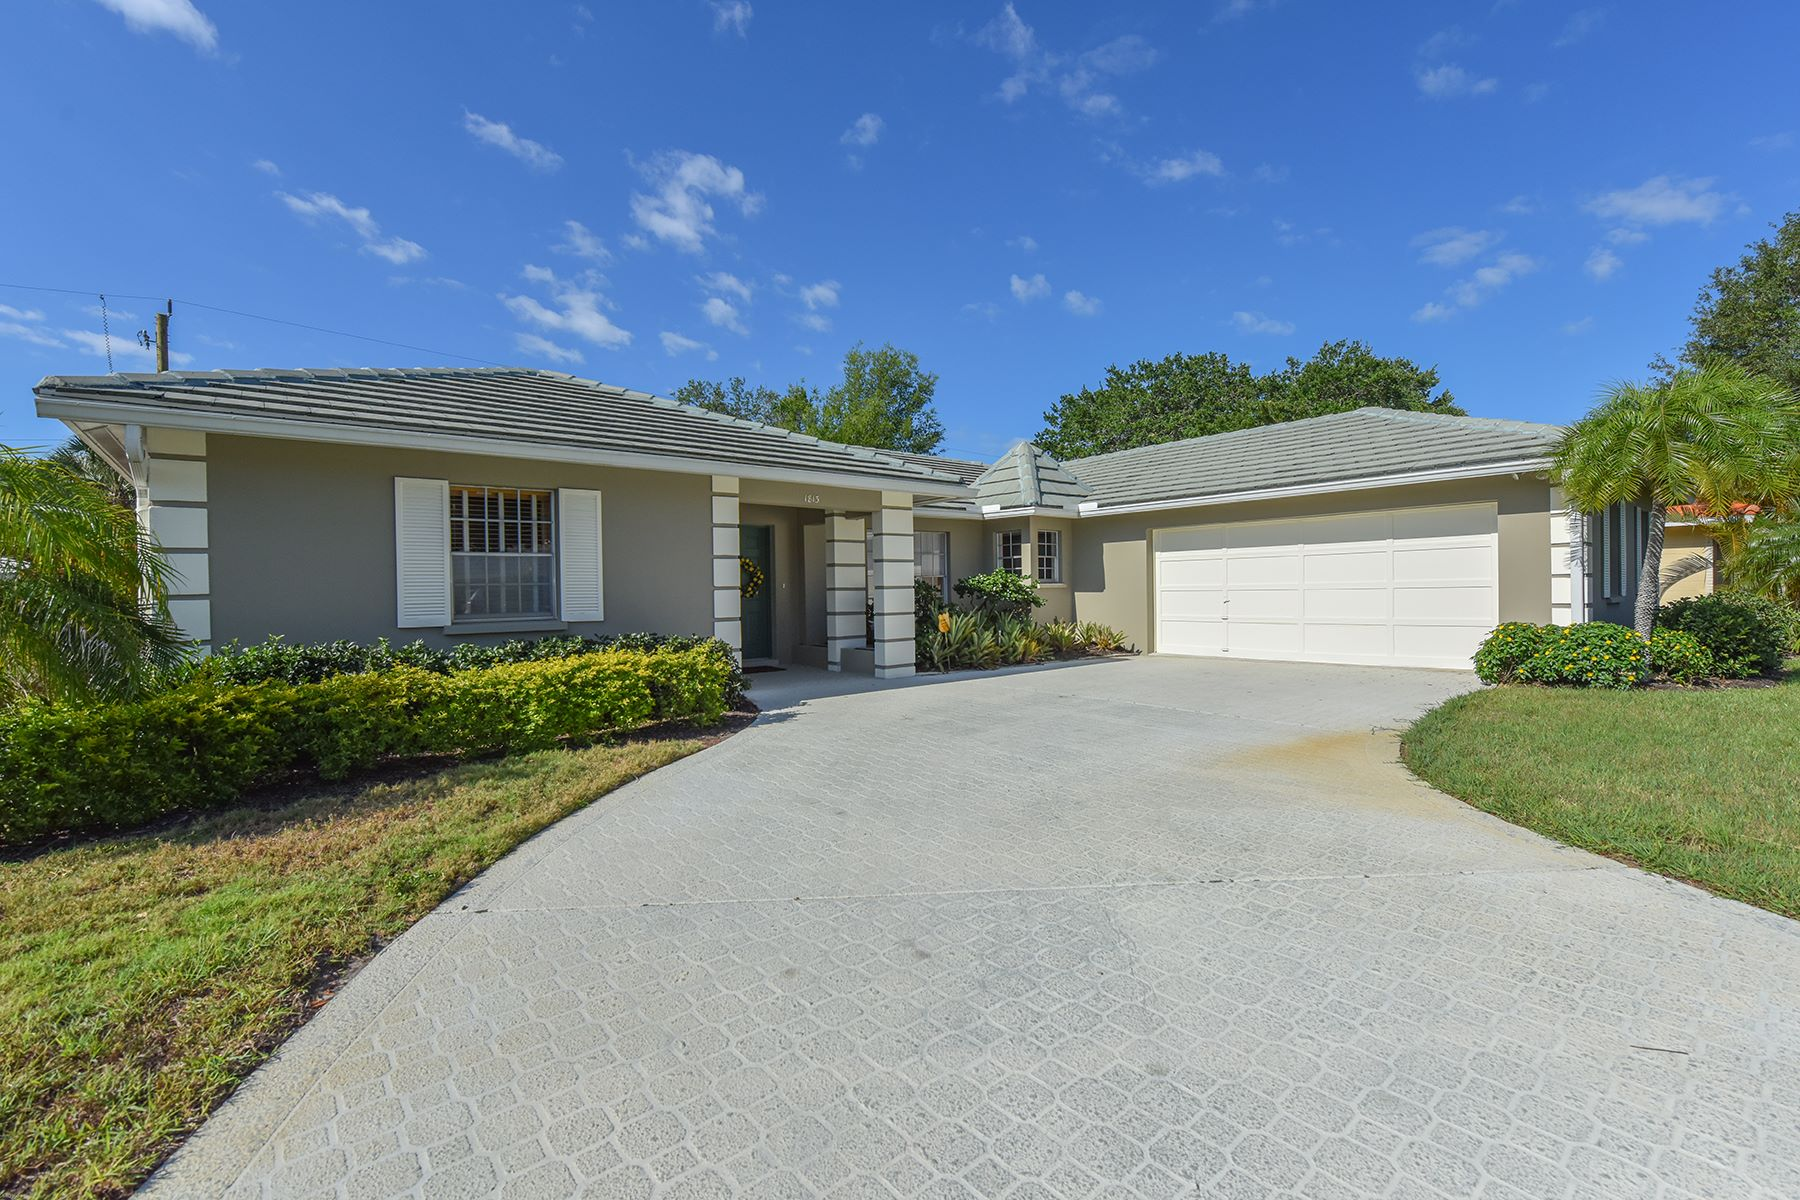 Single Family Home for Sale at FOREST LAKES - SARASOTA 1813 Mid Ocean Cir Sarasota, Florida, 34239 United States